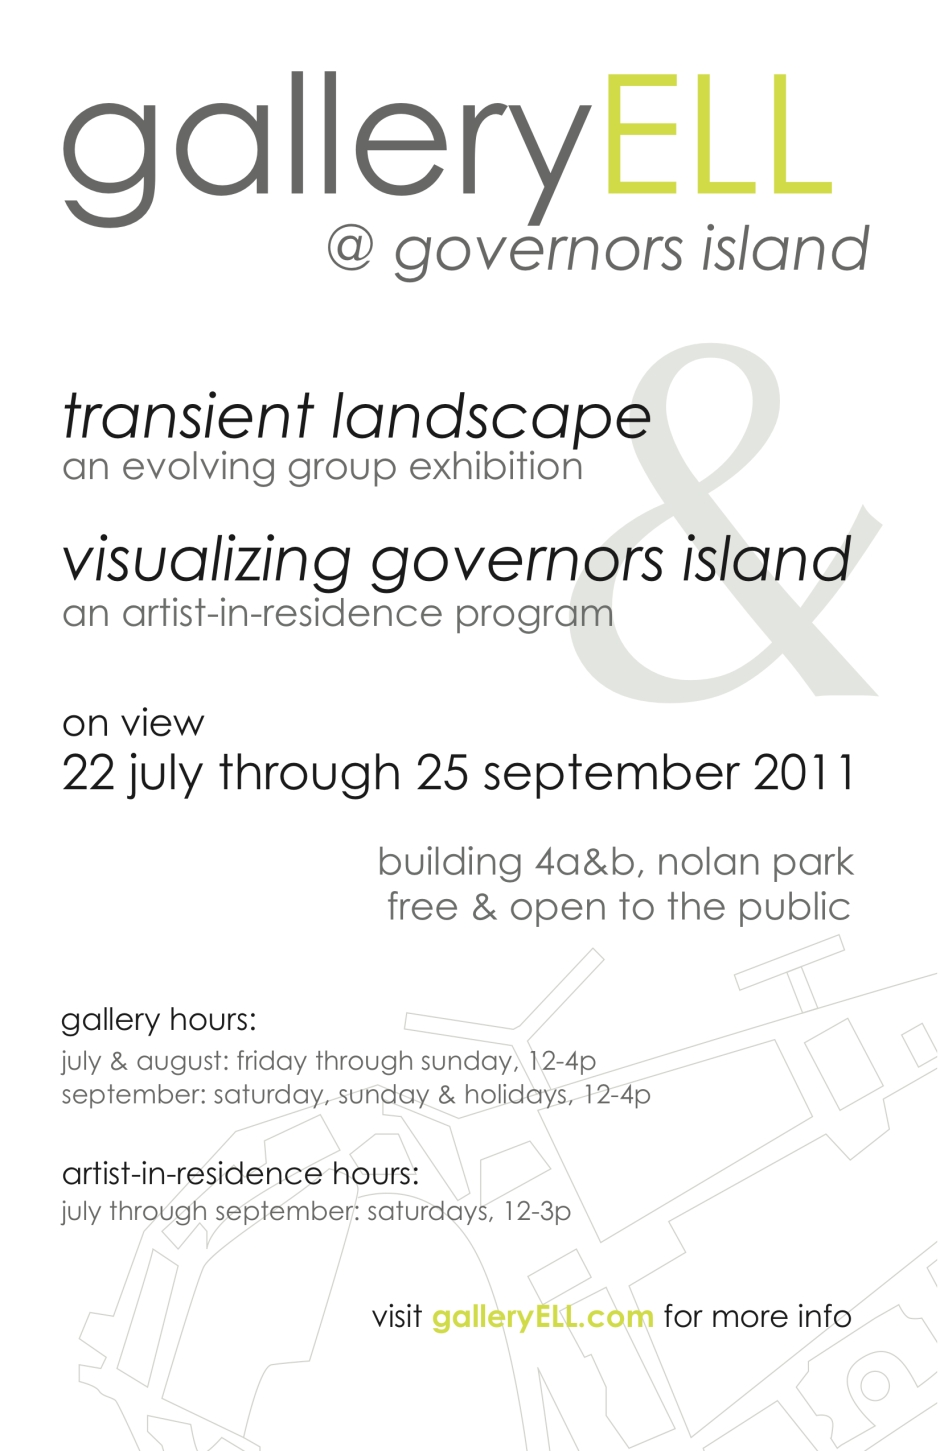 galleryELL @ governors island poster.  design: christine gedeon, 2011.